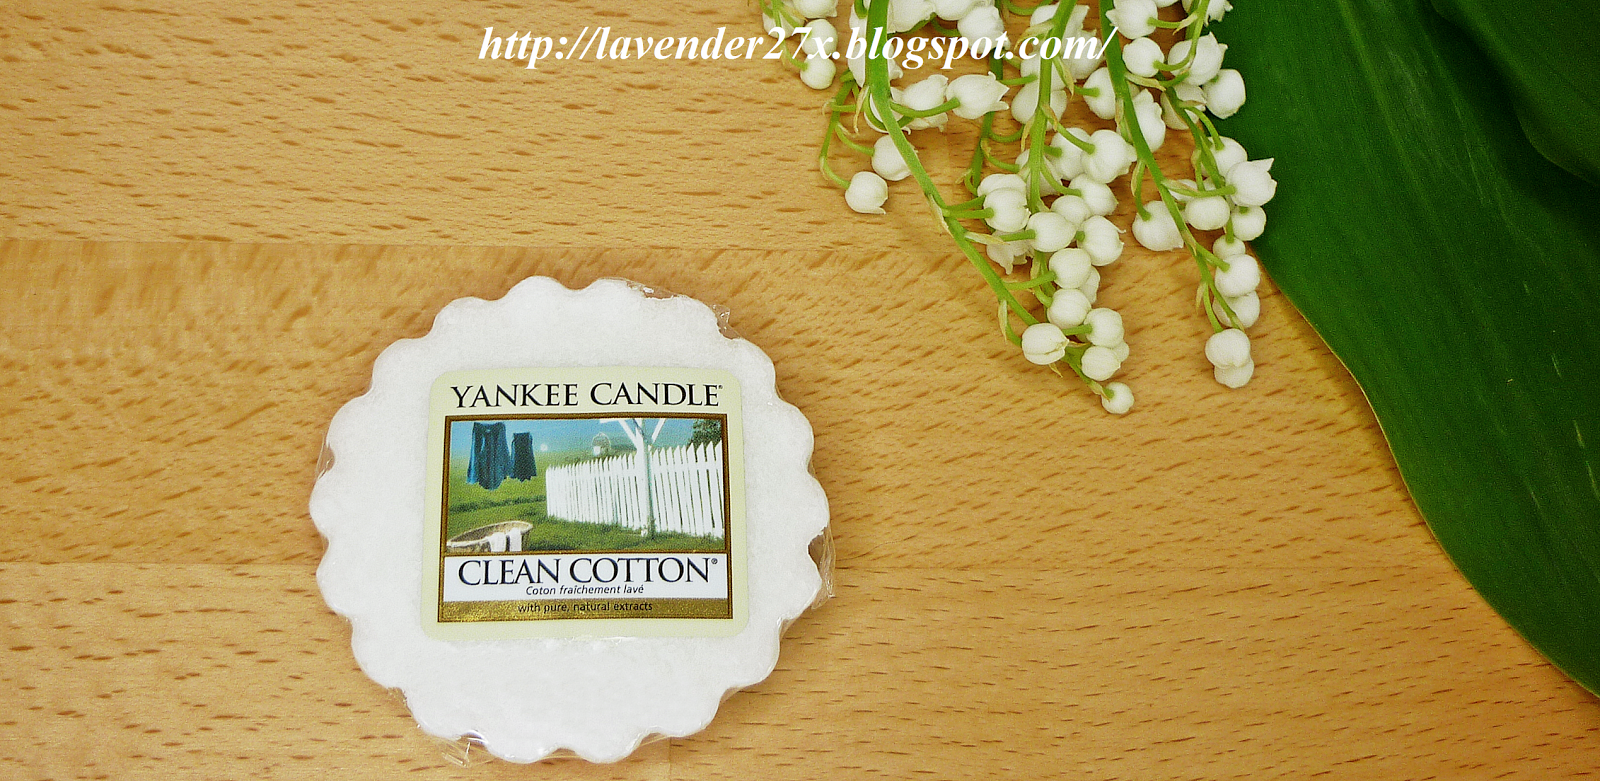 http://lavender27x.blogspot.com/2014/07/pachnido-yankee-candle-clean-cotton.html